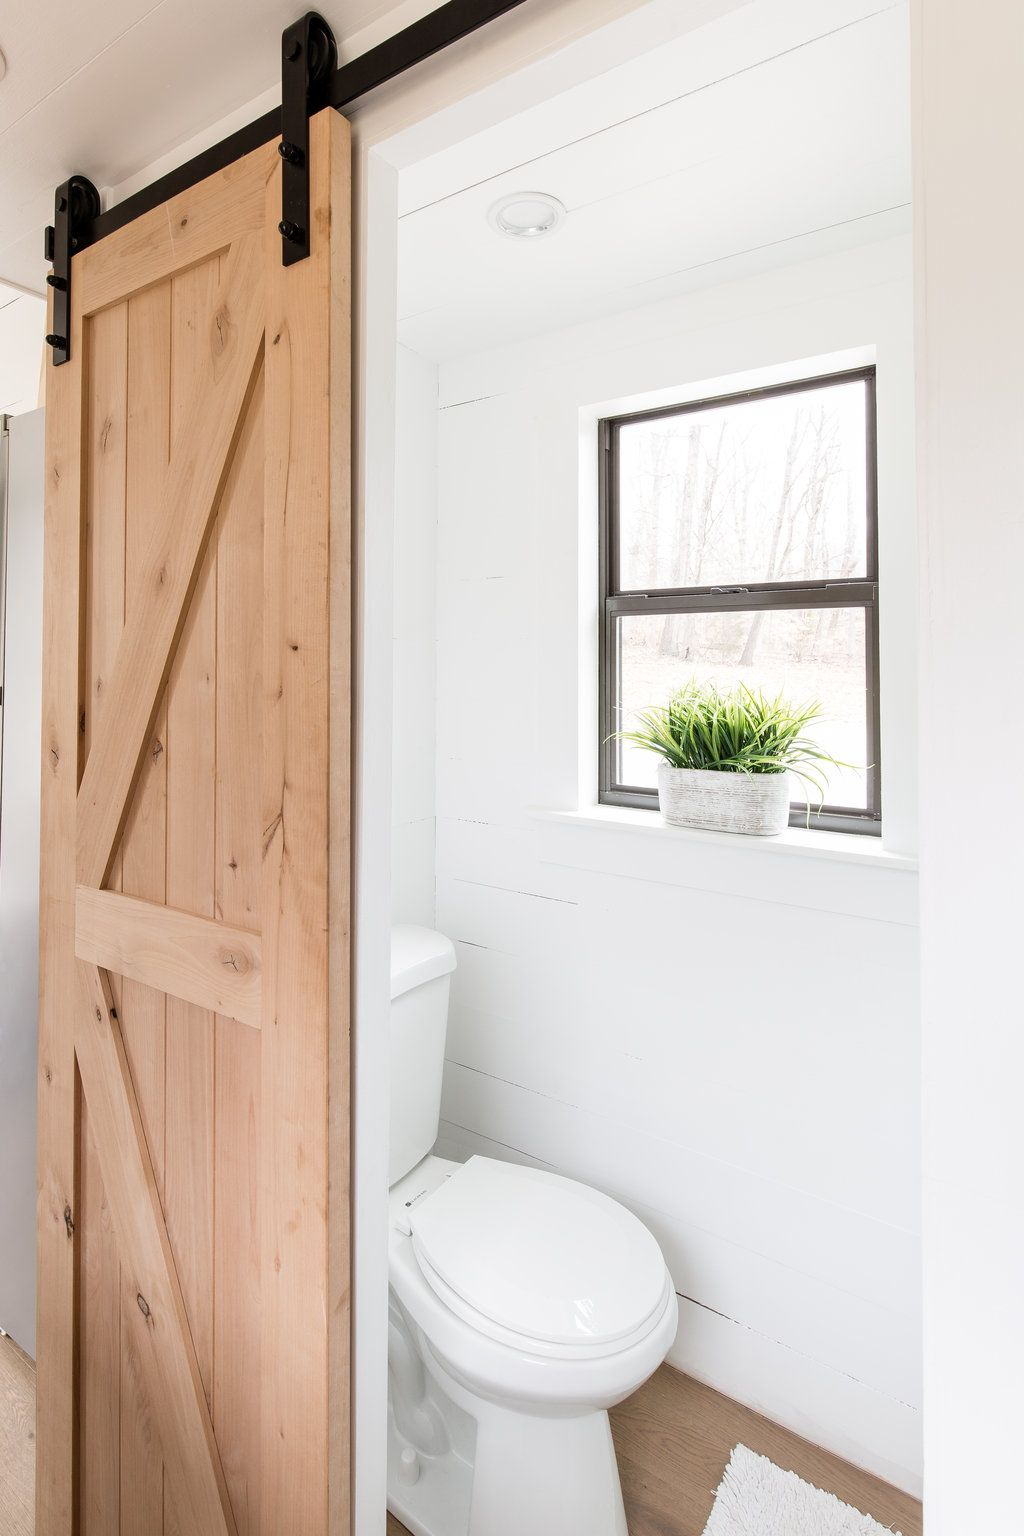 5 Brilliant Small Space Solutions Inspired by Tiny Homes ...